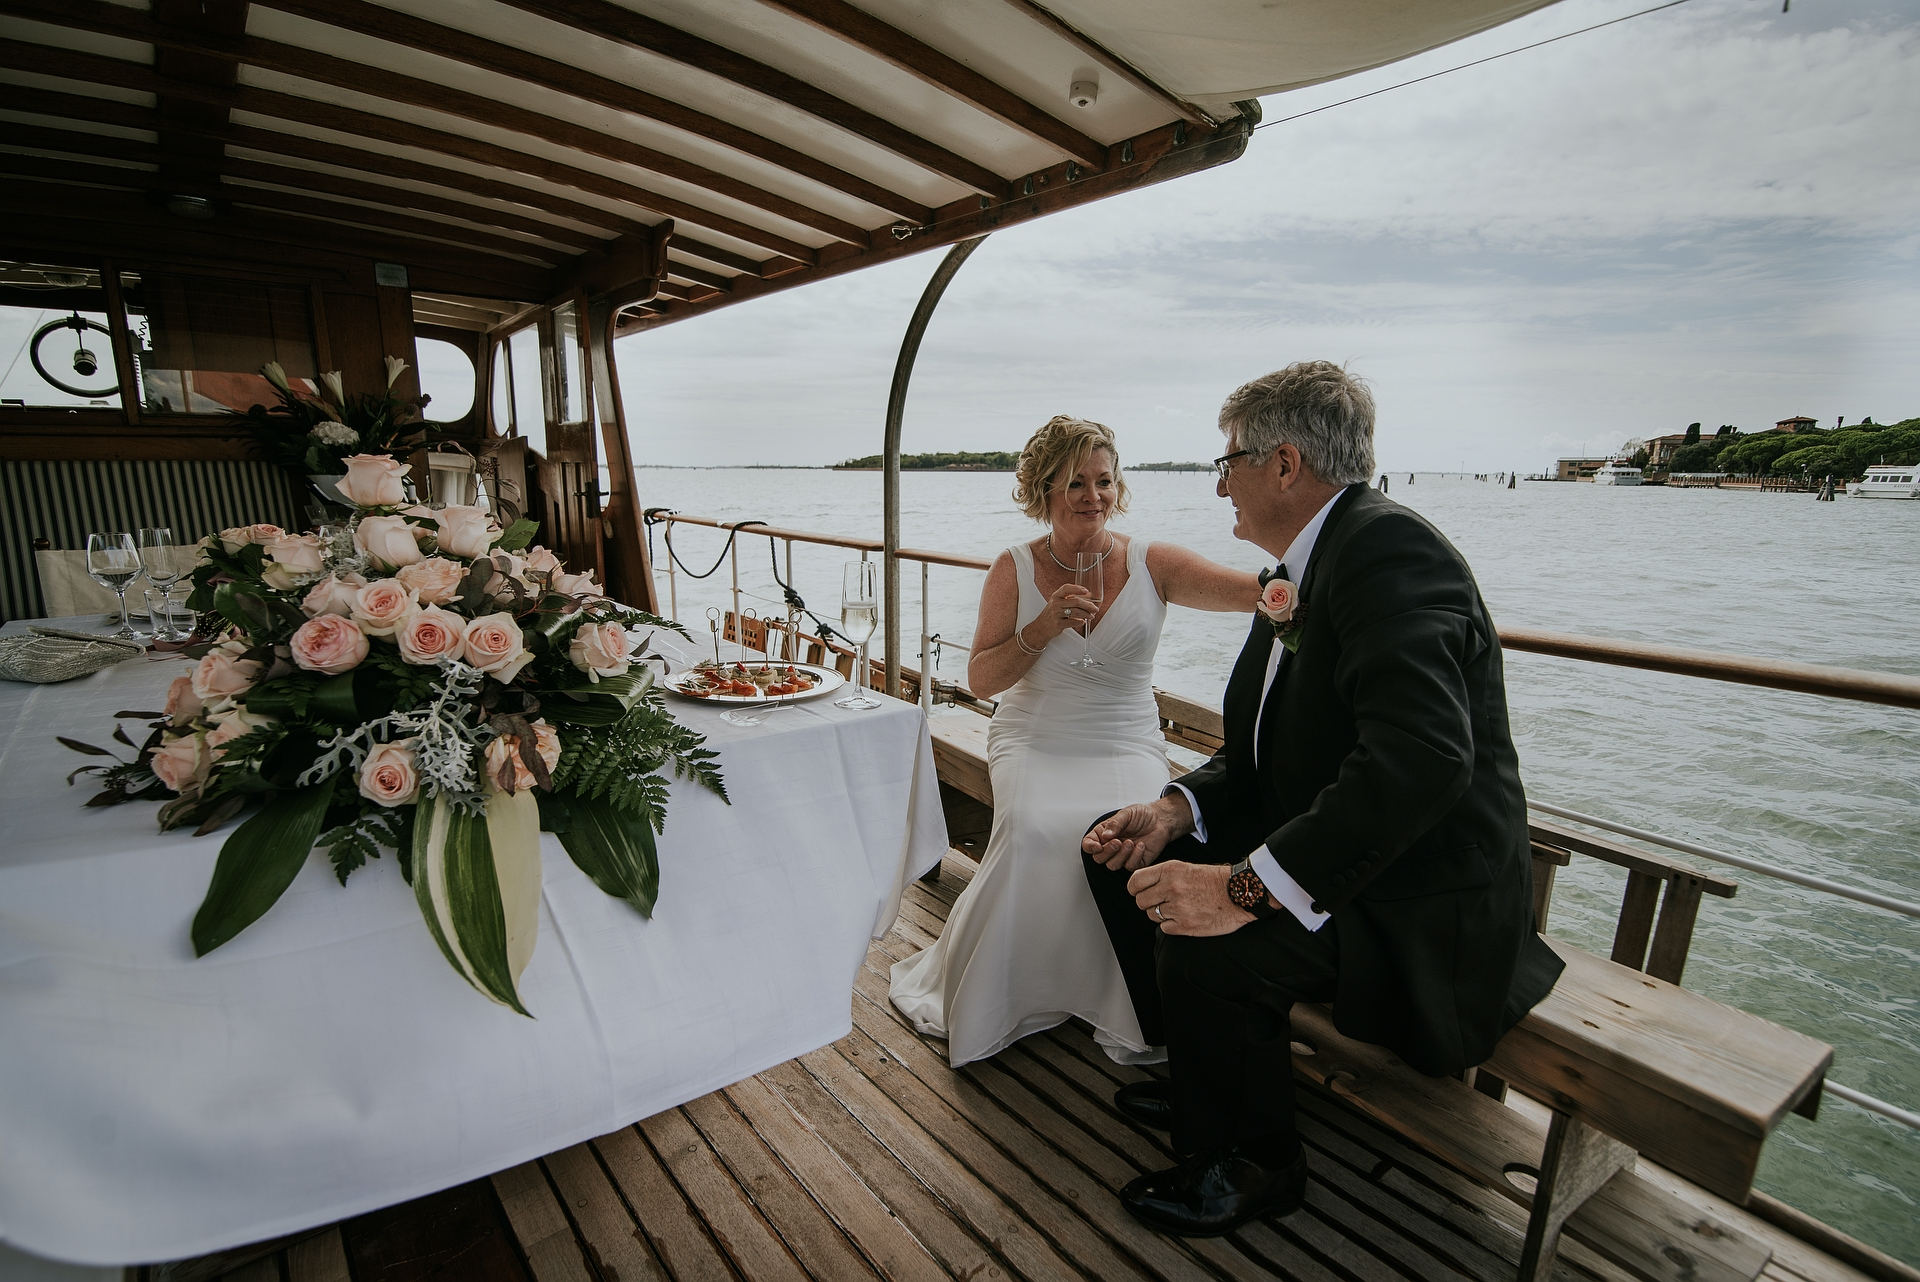 Silver Yacht - Venice Lagoon, Italy Elopement Reception Image | the couple reached the Silver Yacht by taxi and were welcomed on board